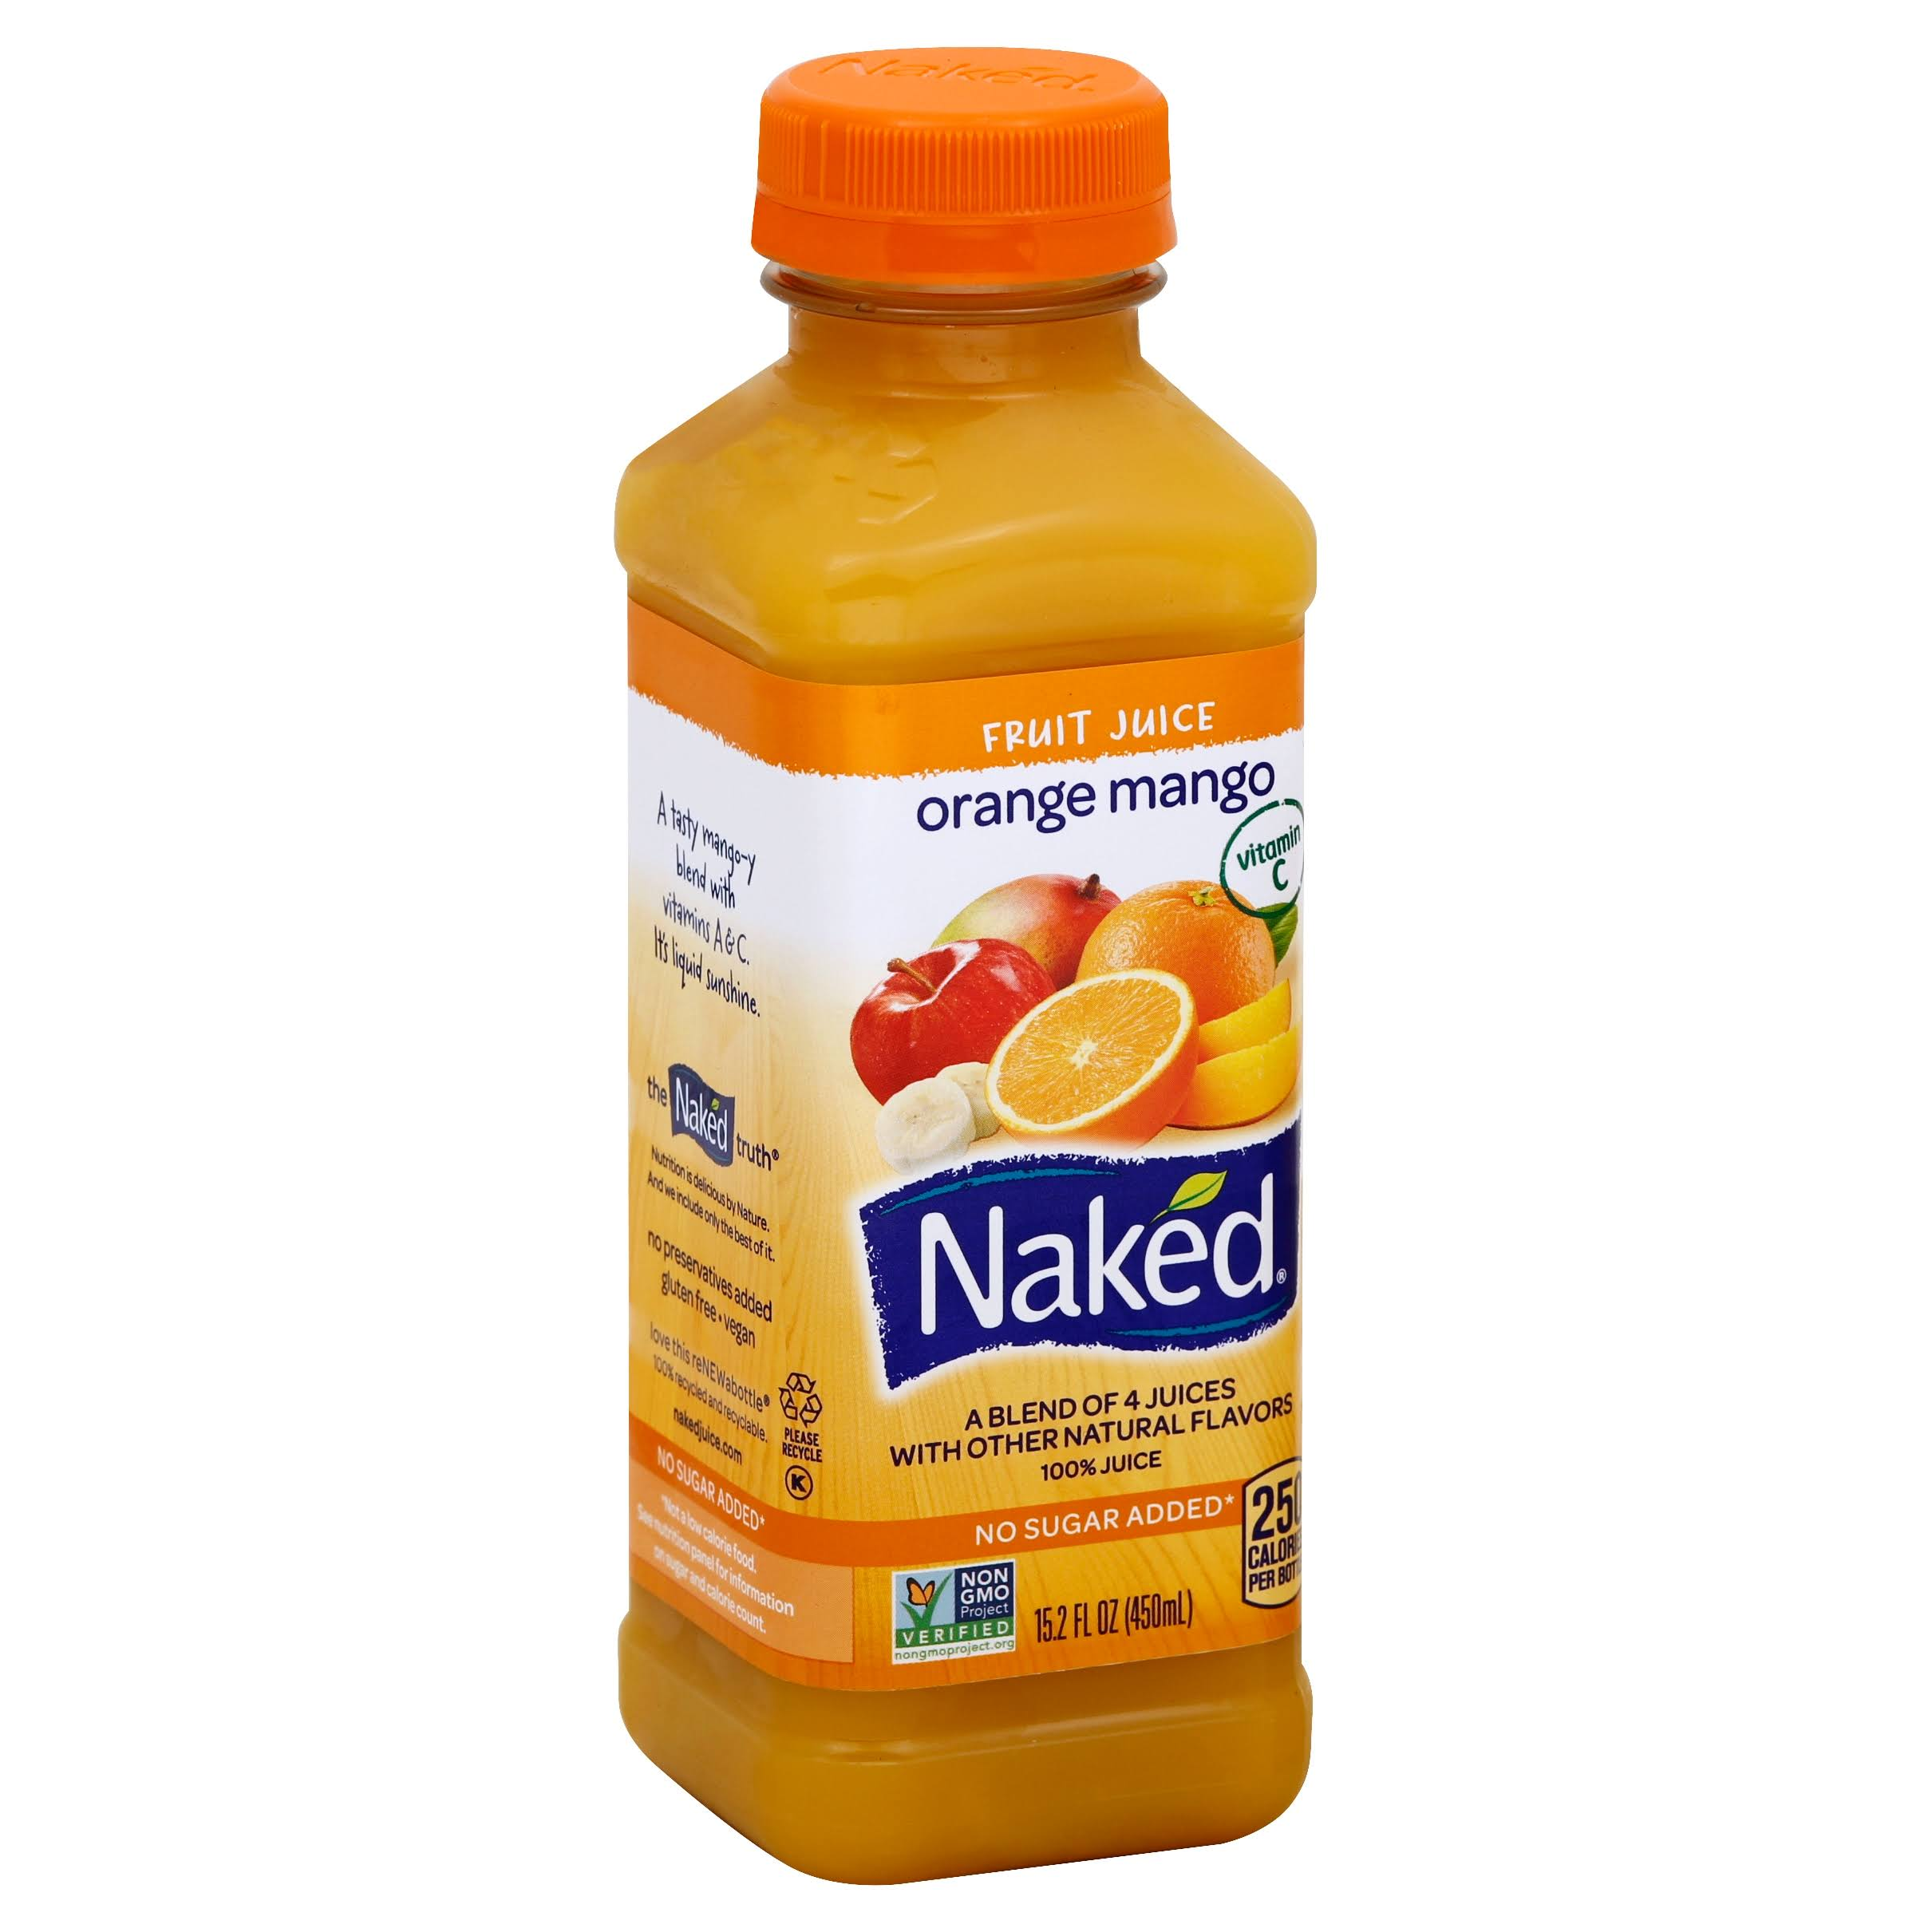 Naked Juice Smoothie - Orange Mango Motion, 15.2oz